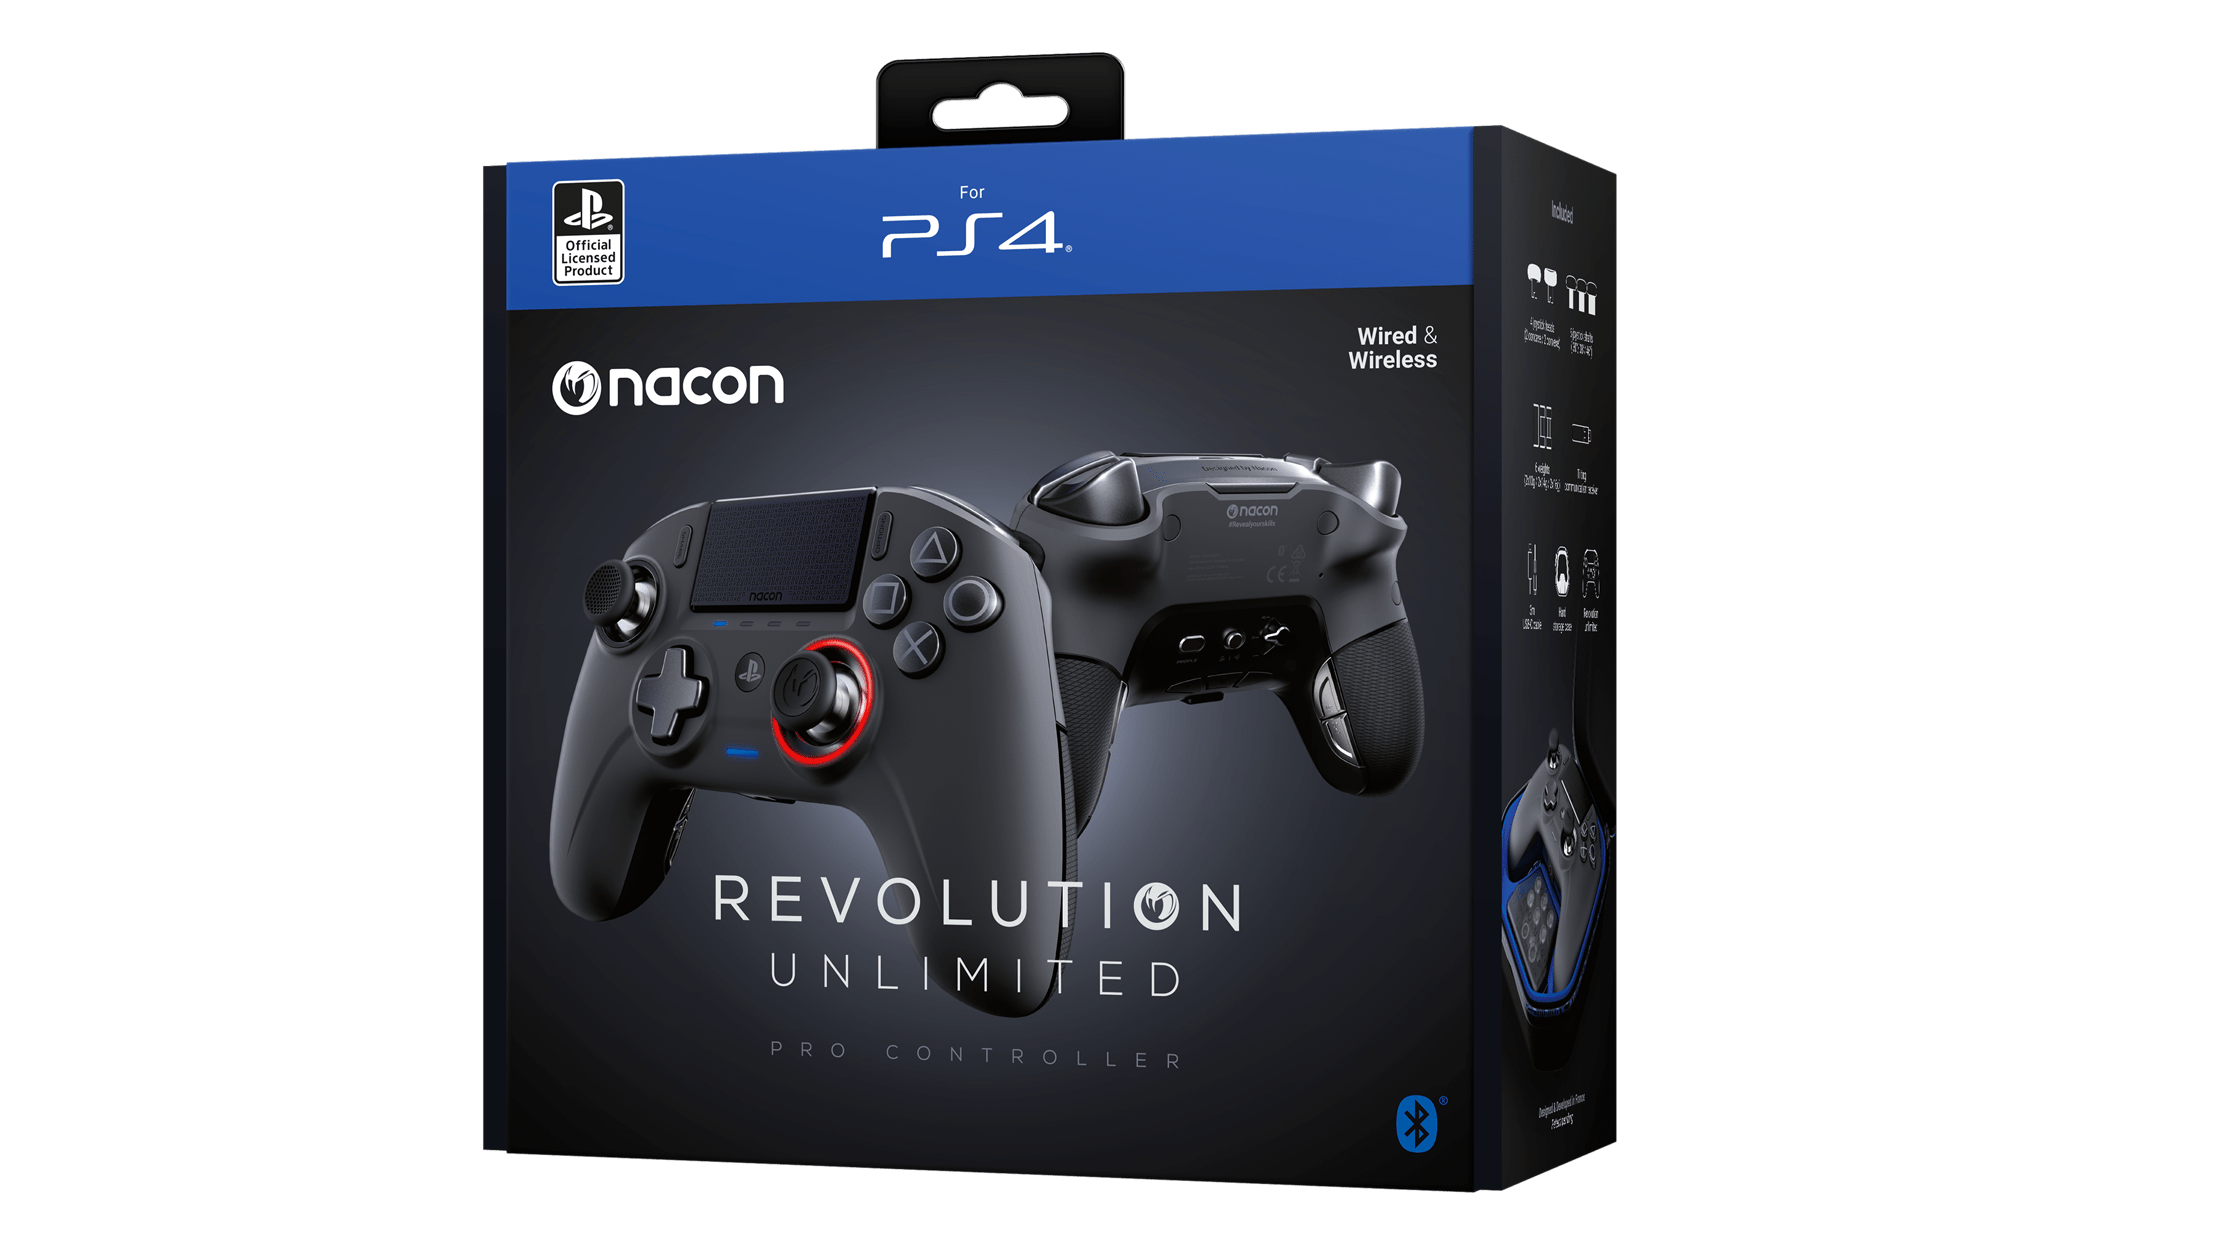 Nacon reveals Revolution Unlimited Pro controller for PS4